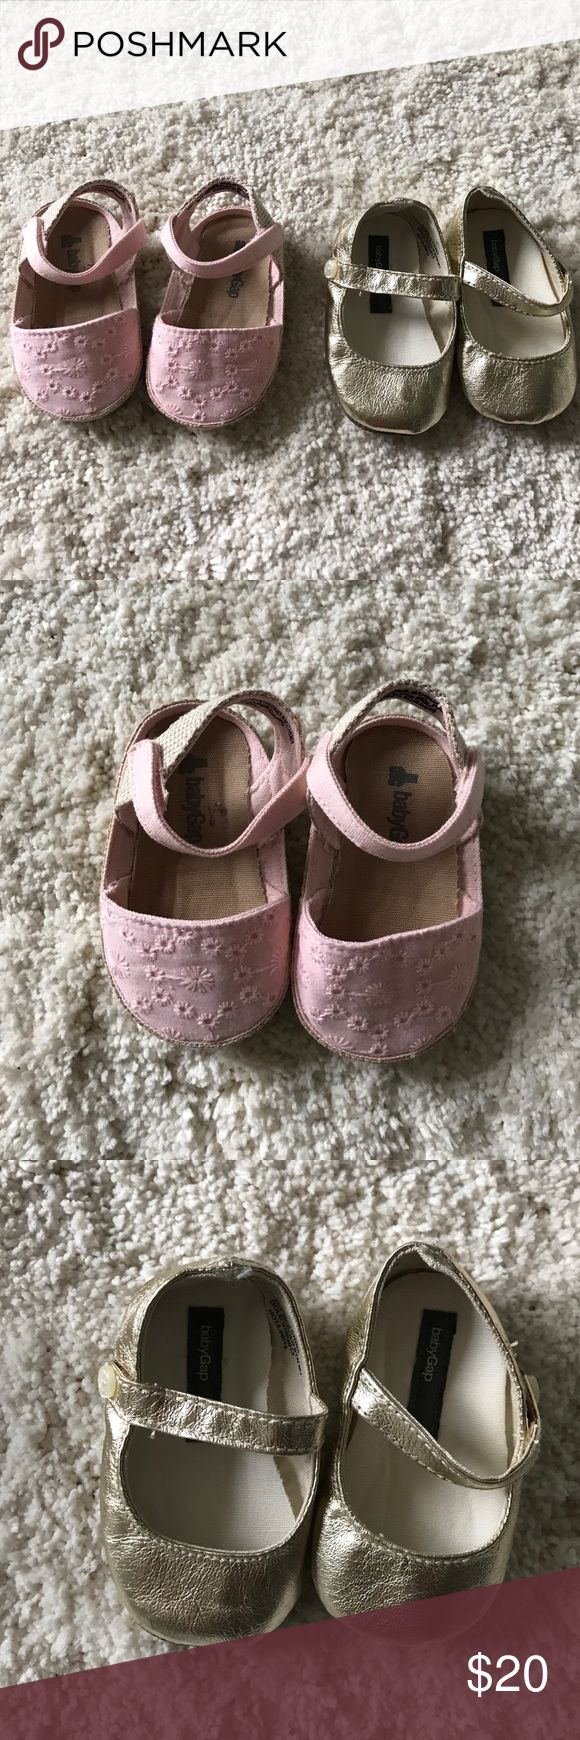 Baby Gap shoes Baby Gap shoes. New without tags - never worn. GAP Shoes